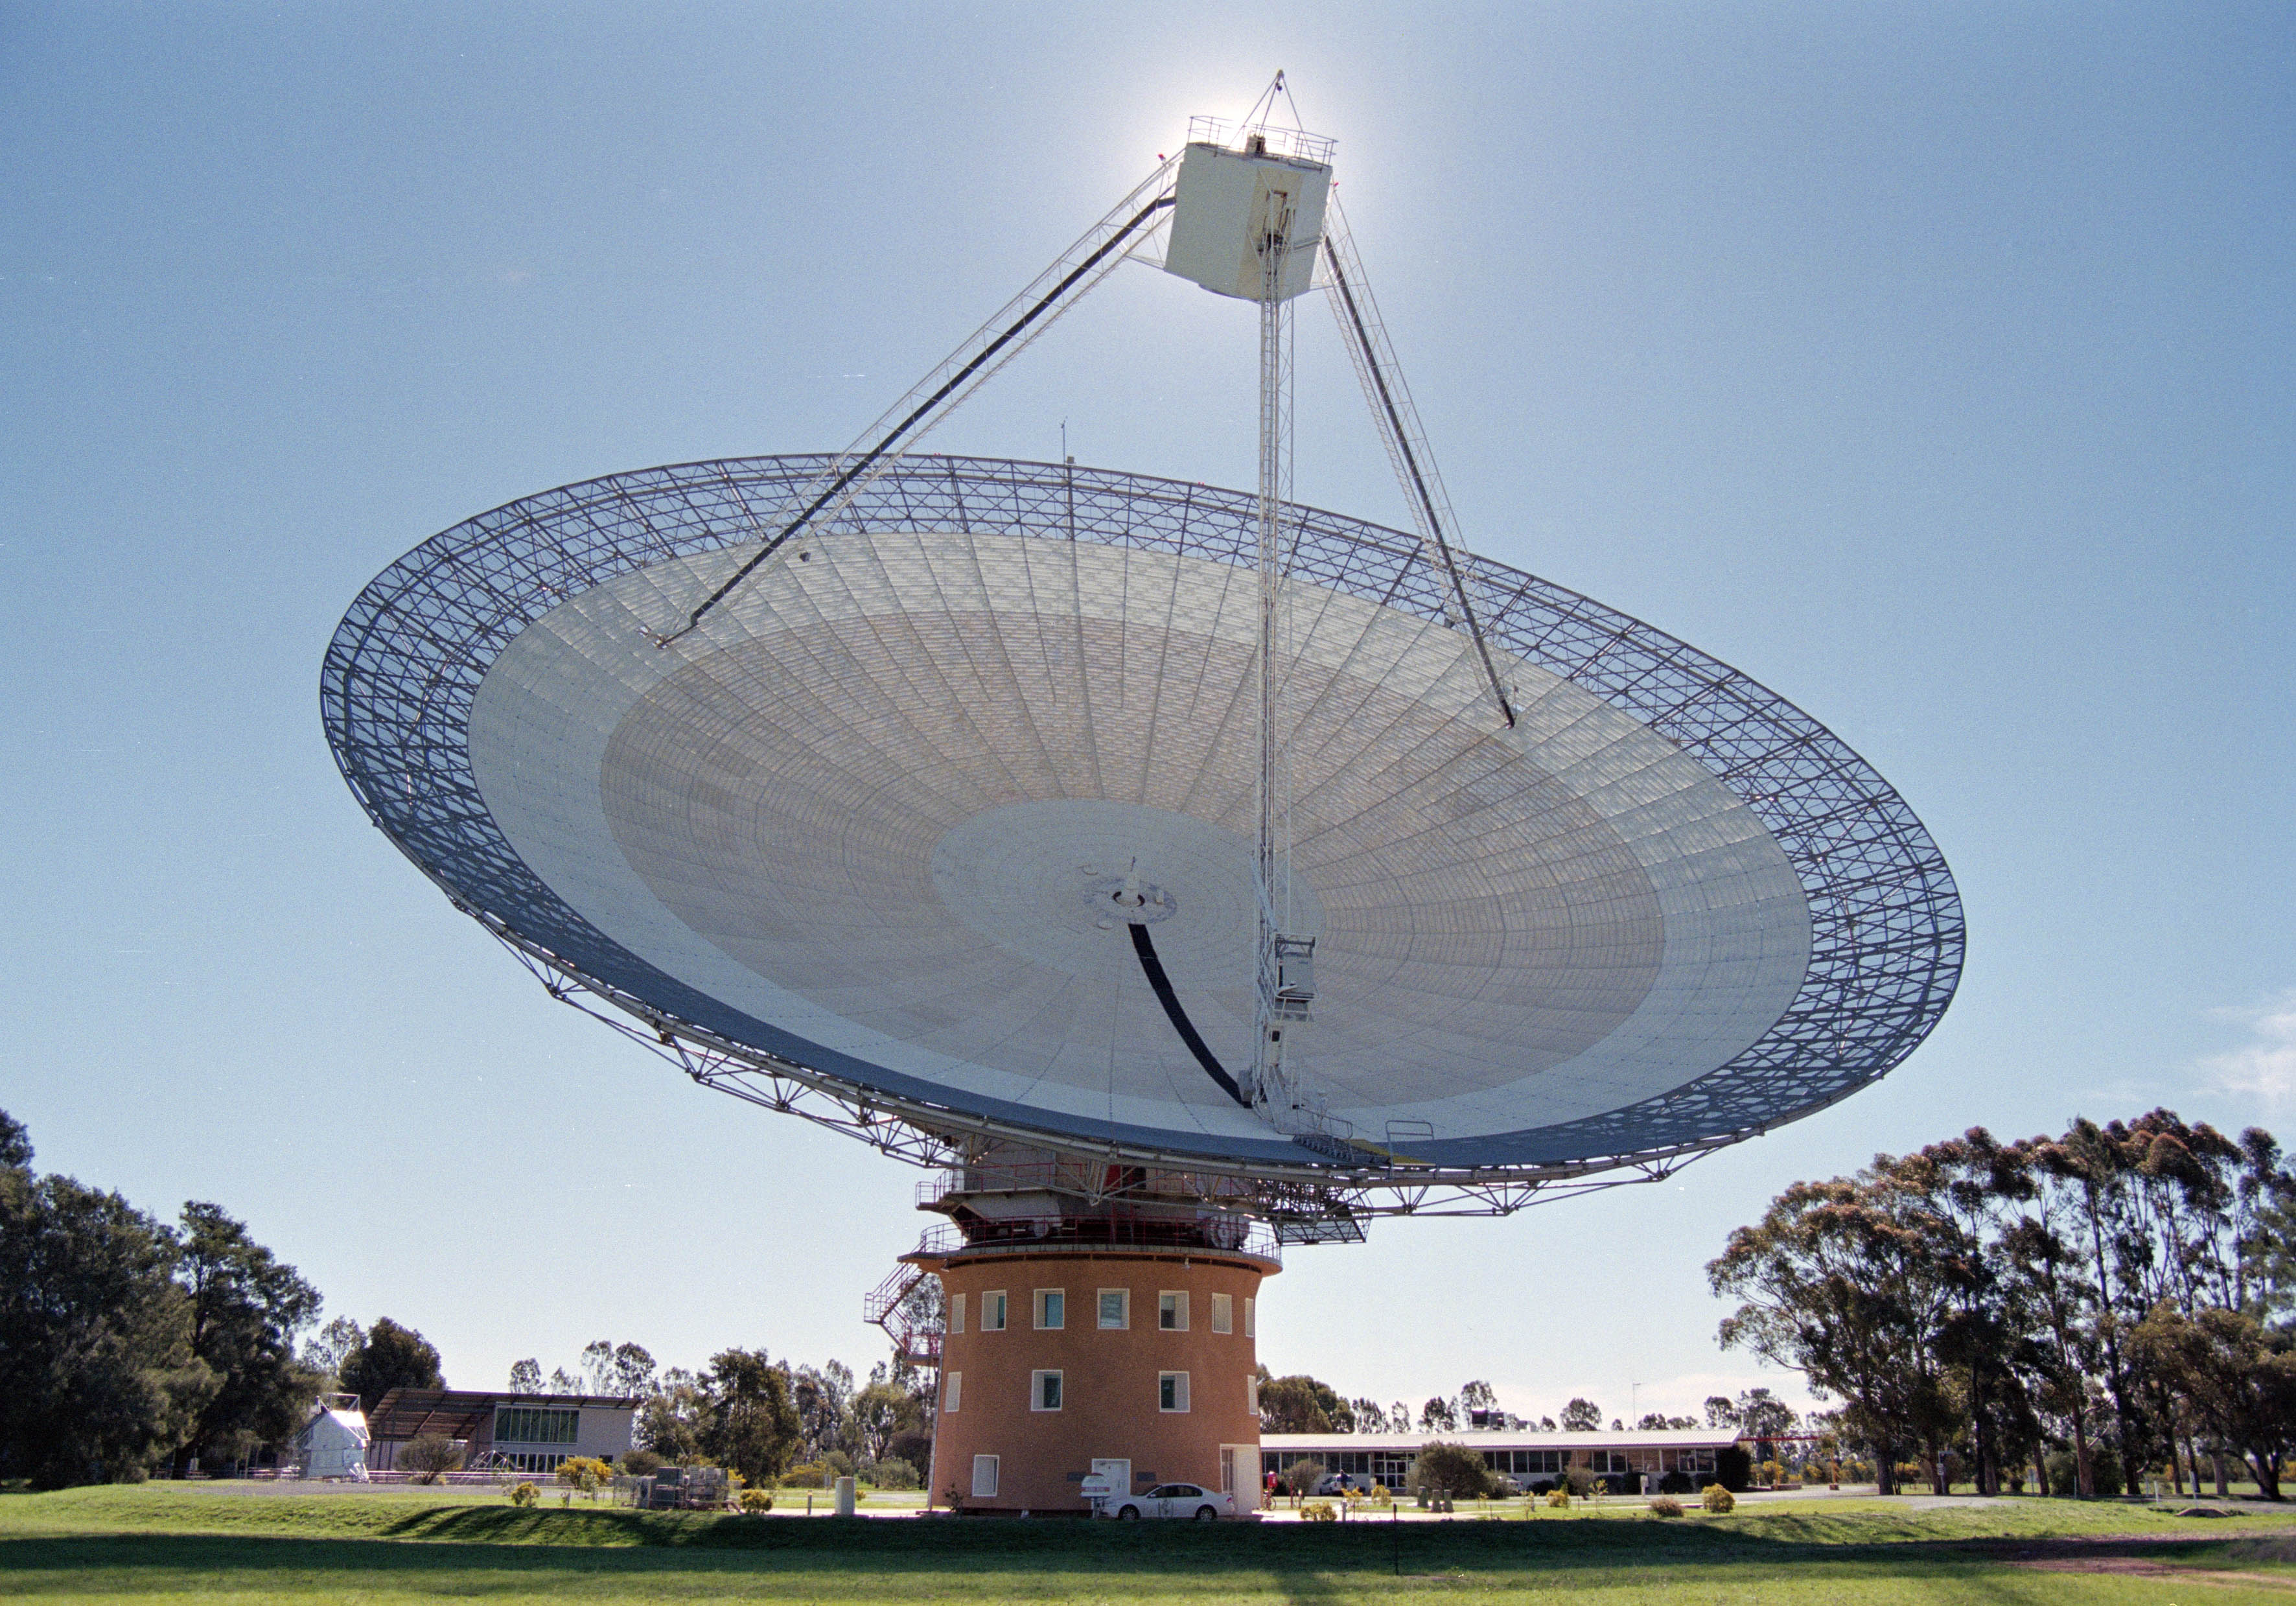 The Parkes telescope: hunting for gravitational waves. (Photo: John Sarkissian)